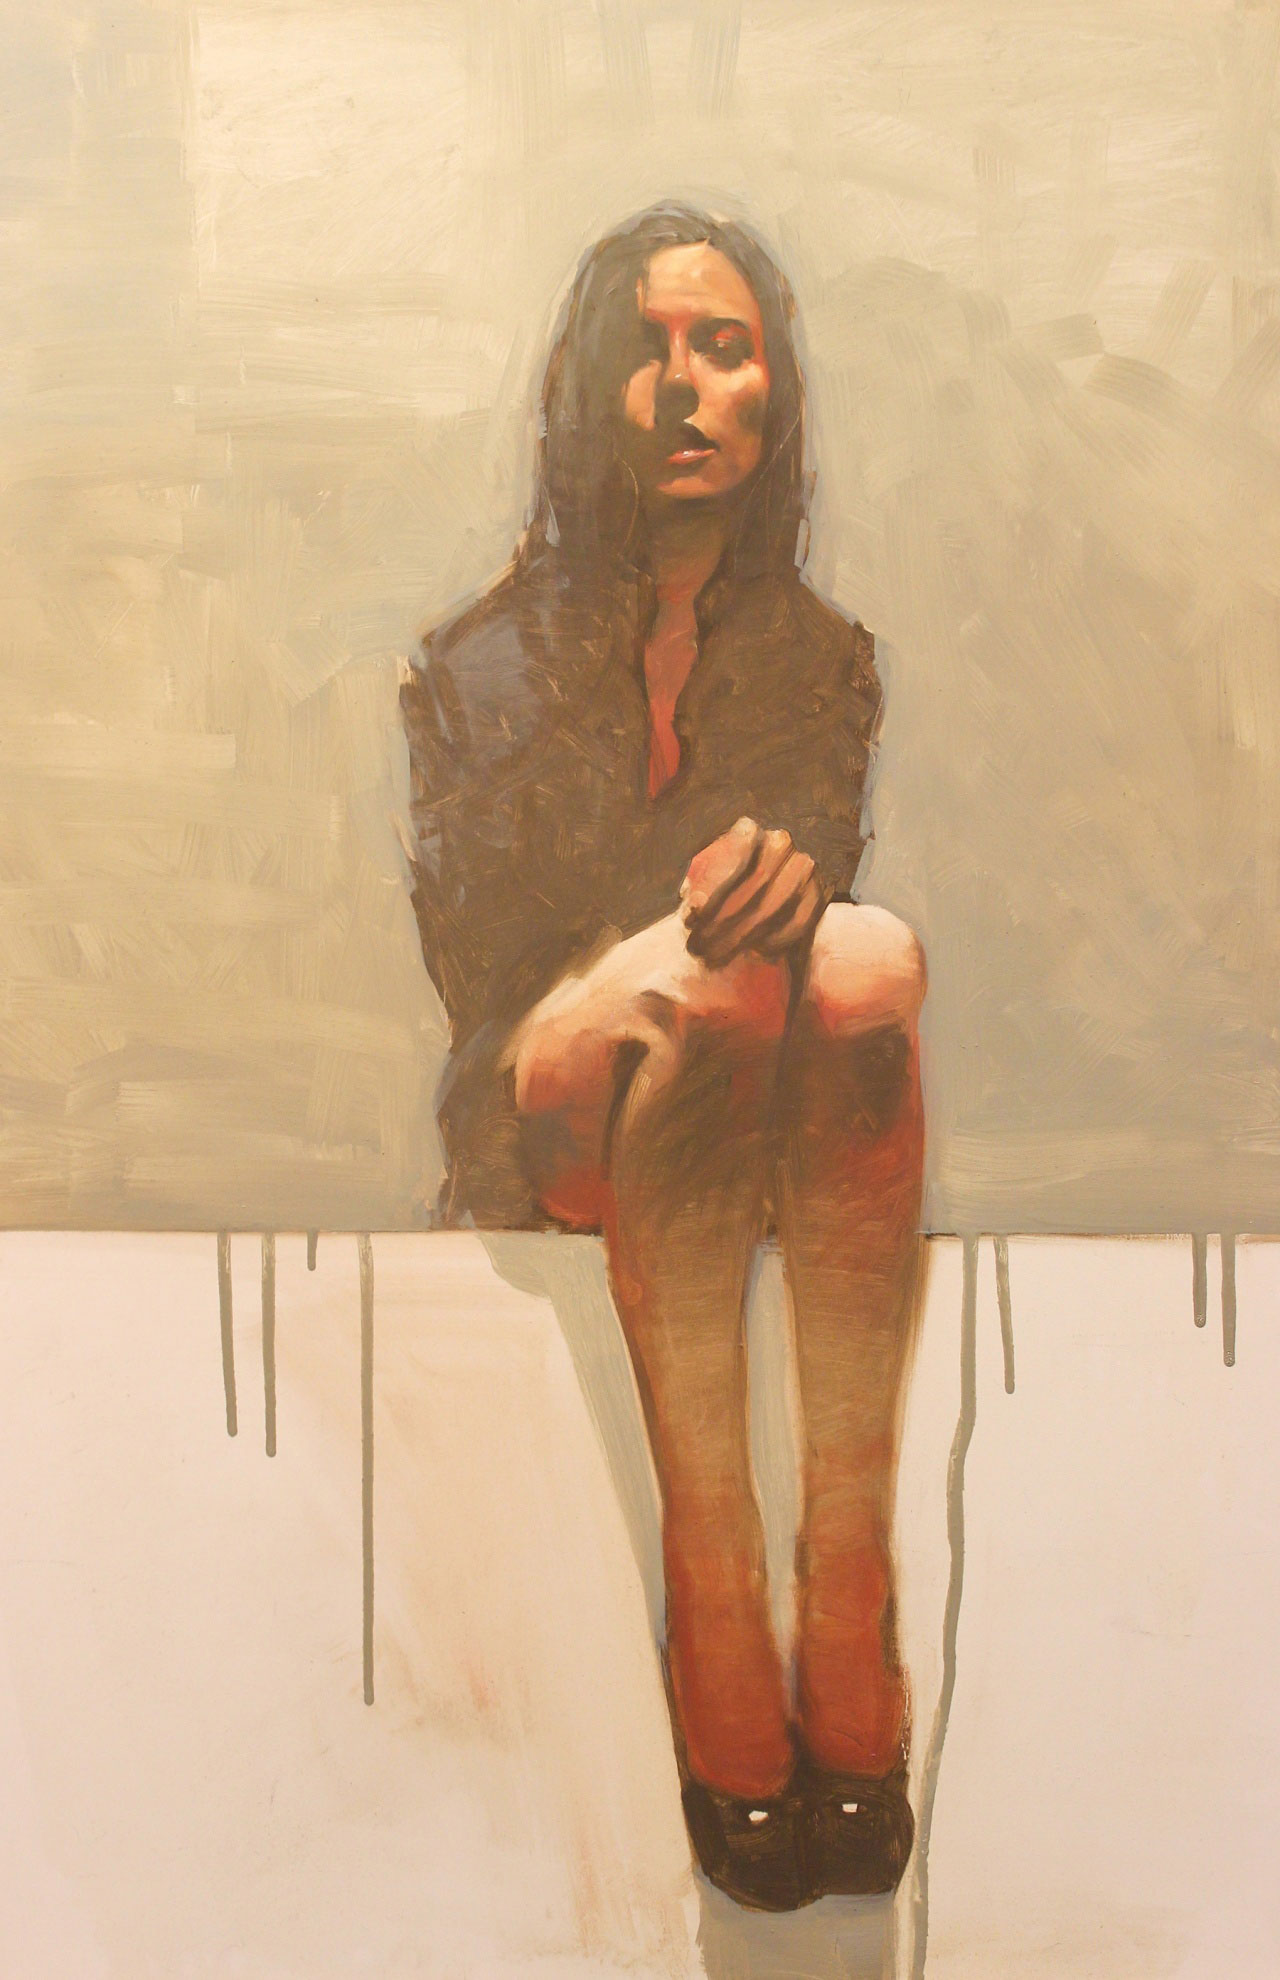 Michael Carson - Cracked Foundations